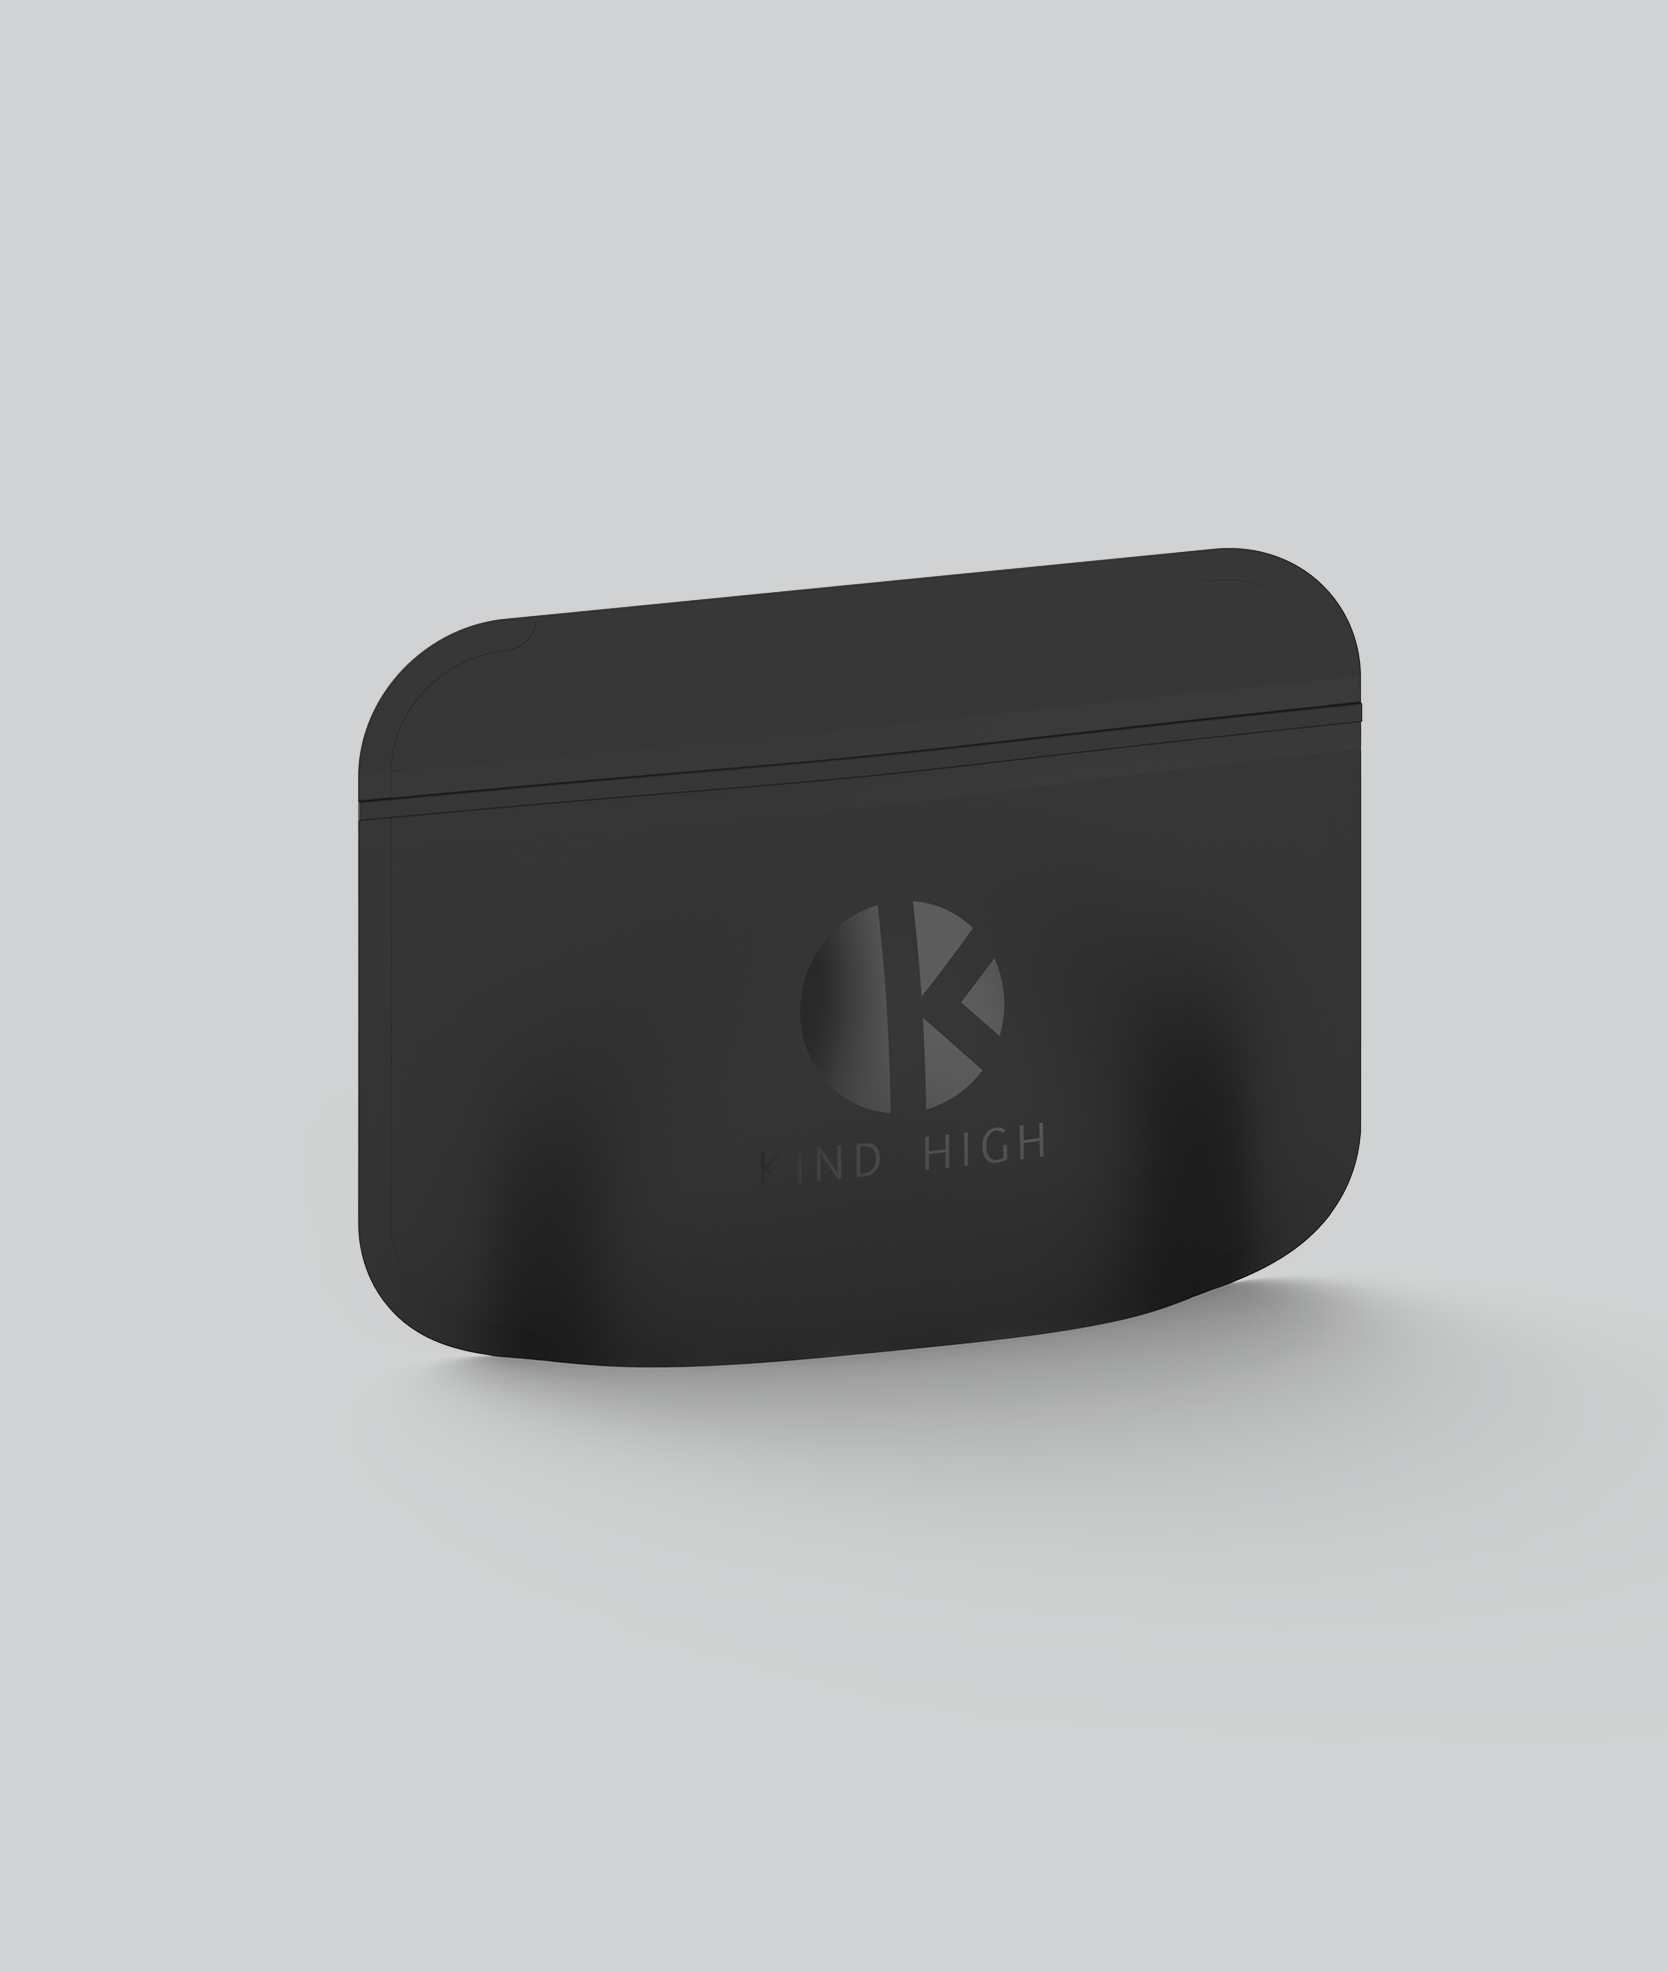 kindhigh-red-dot-dispensary-packaging